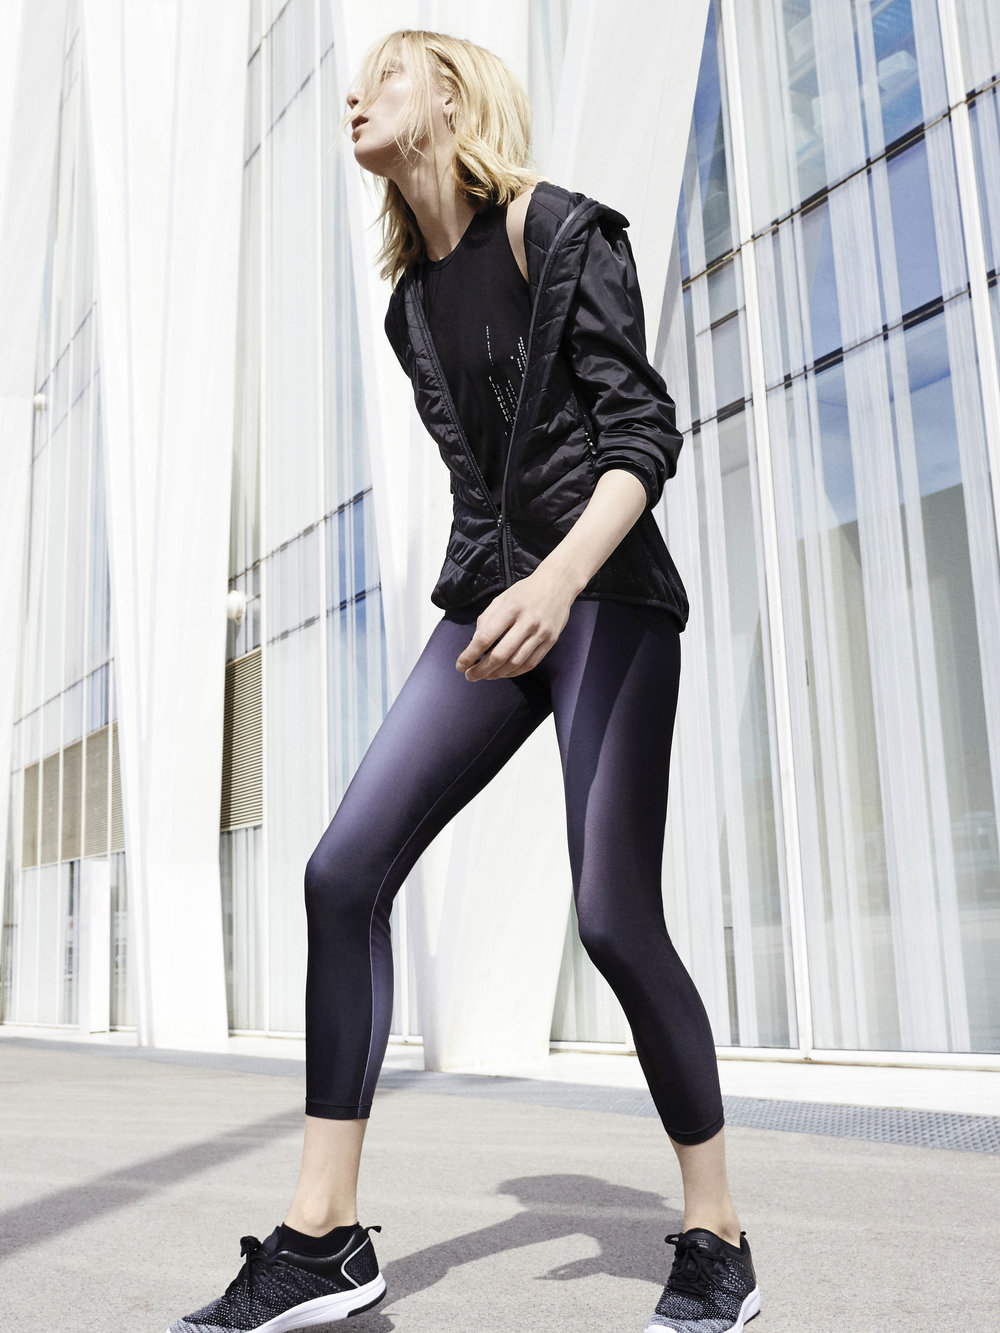 Oysho gymwear Digital Future (26).jpg